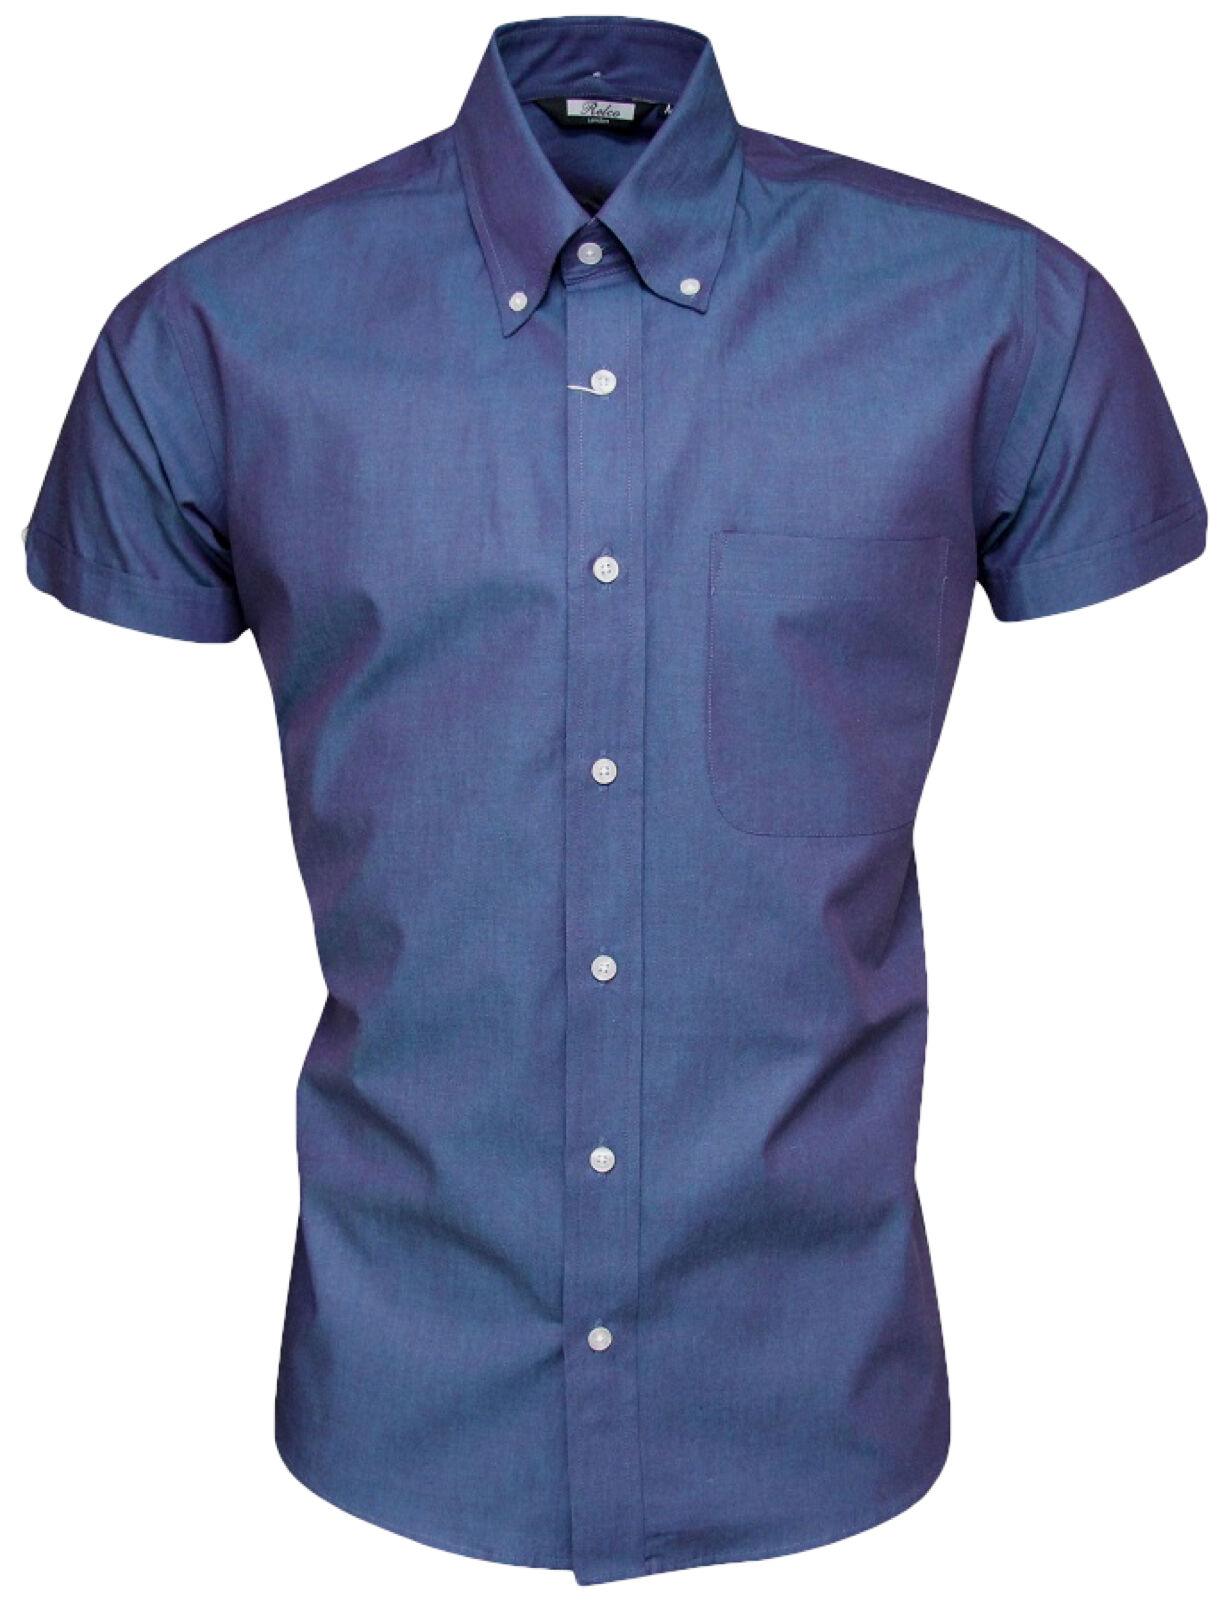 Relco Mens Two Tone Tonic bluee Short Sleeve Shirt Button Down Collar Retro Mod